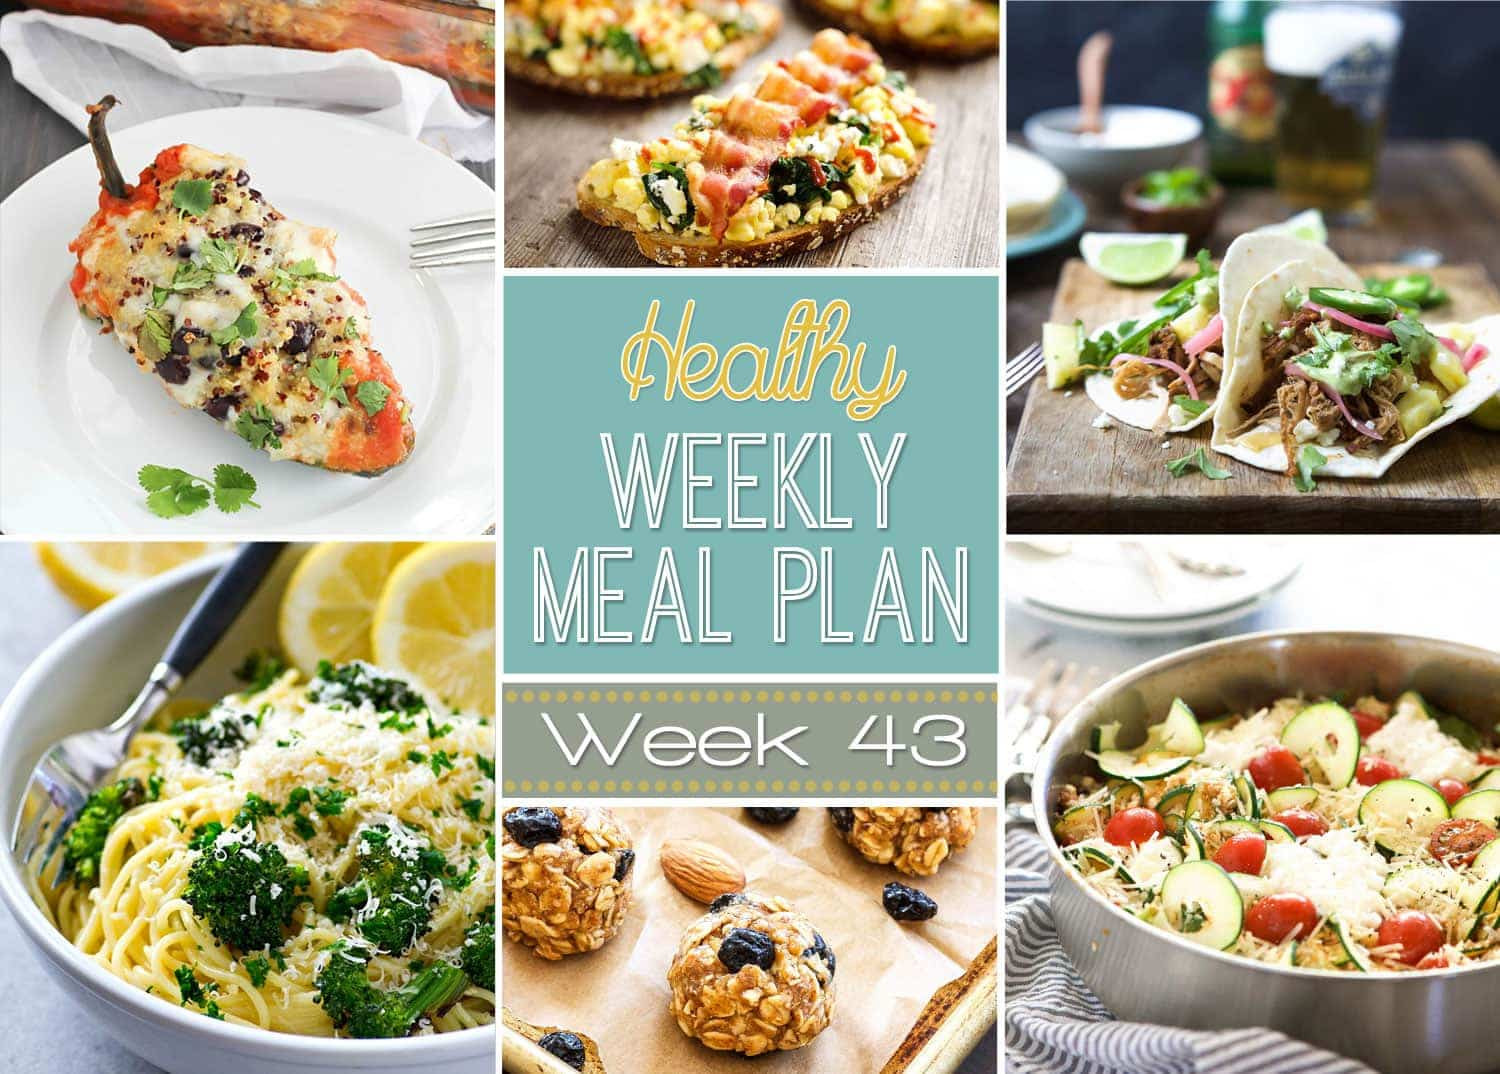 Healthy Meals For Breakfast Lunch And Dinner  Healthy Meal Plan Week 43